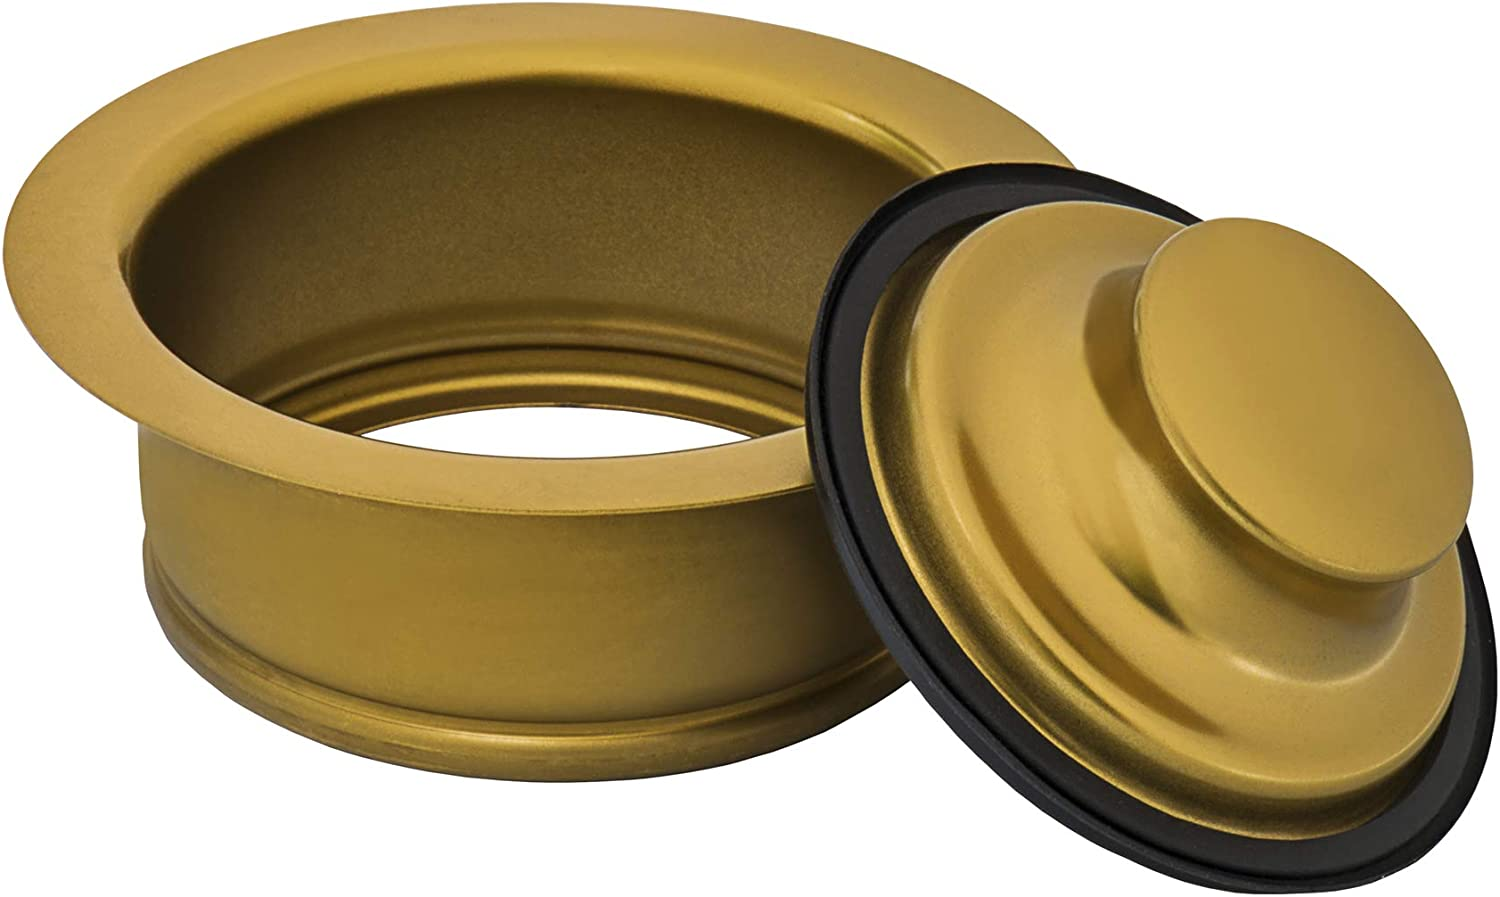 Ruvati Garbage Disposal Flange for Kitchen Sinks Copper Tone Stainless Steel RVA1041CP